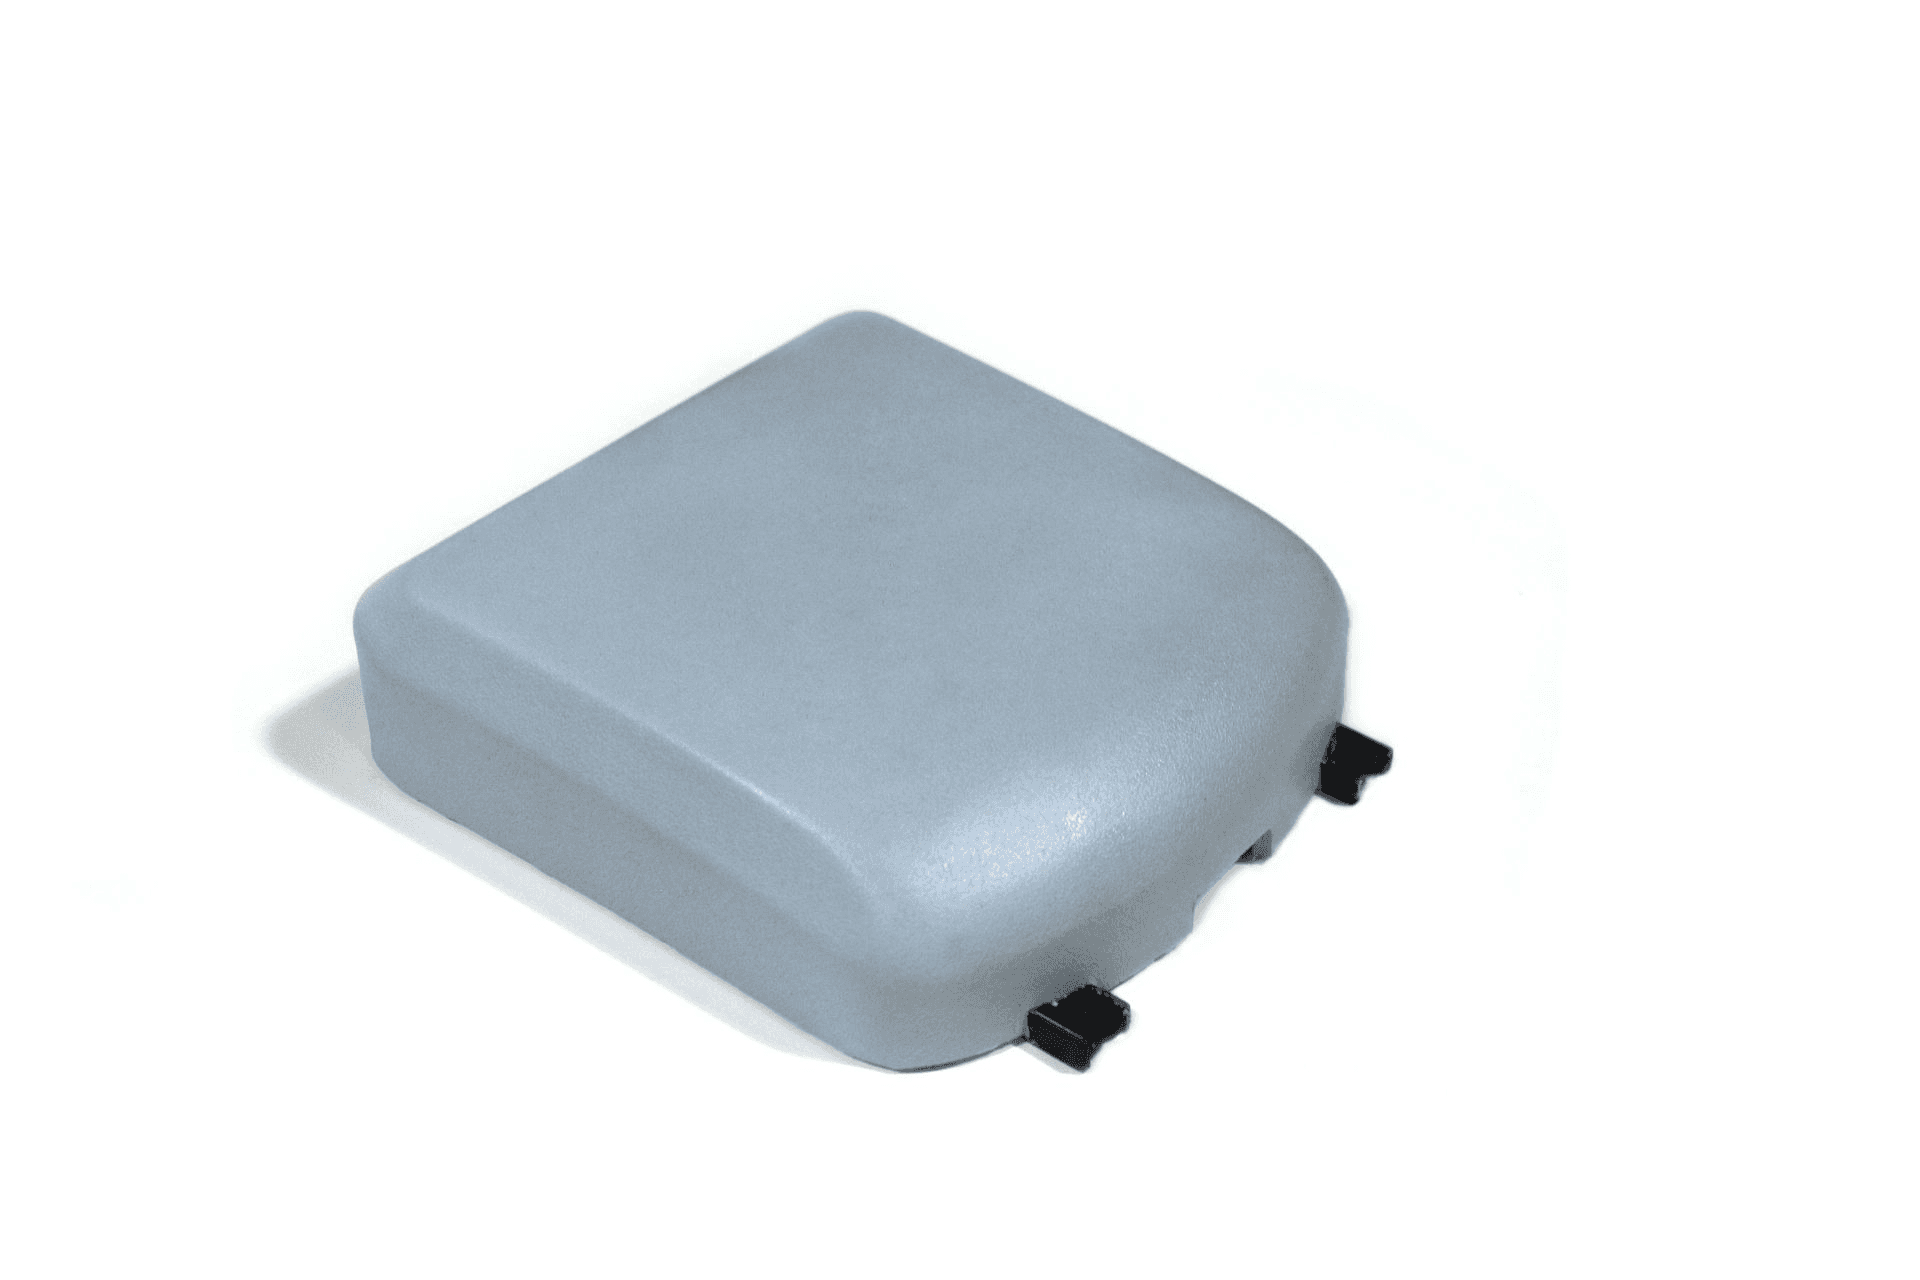 Ninebot Battery Cover